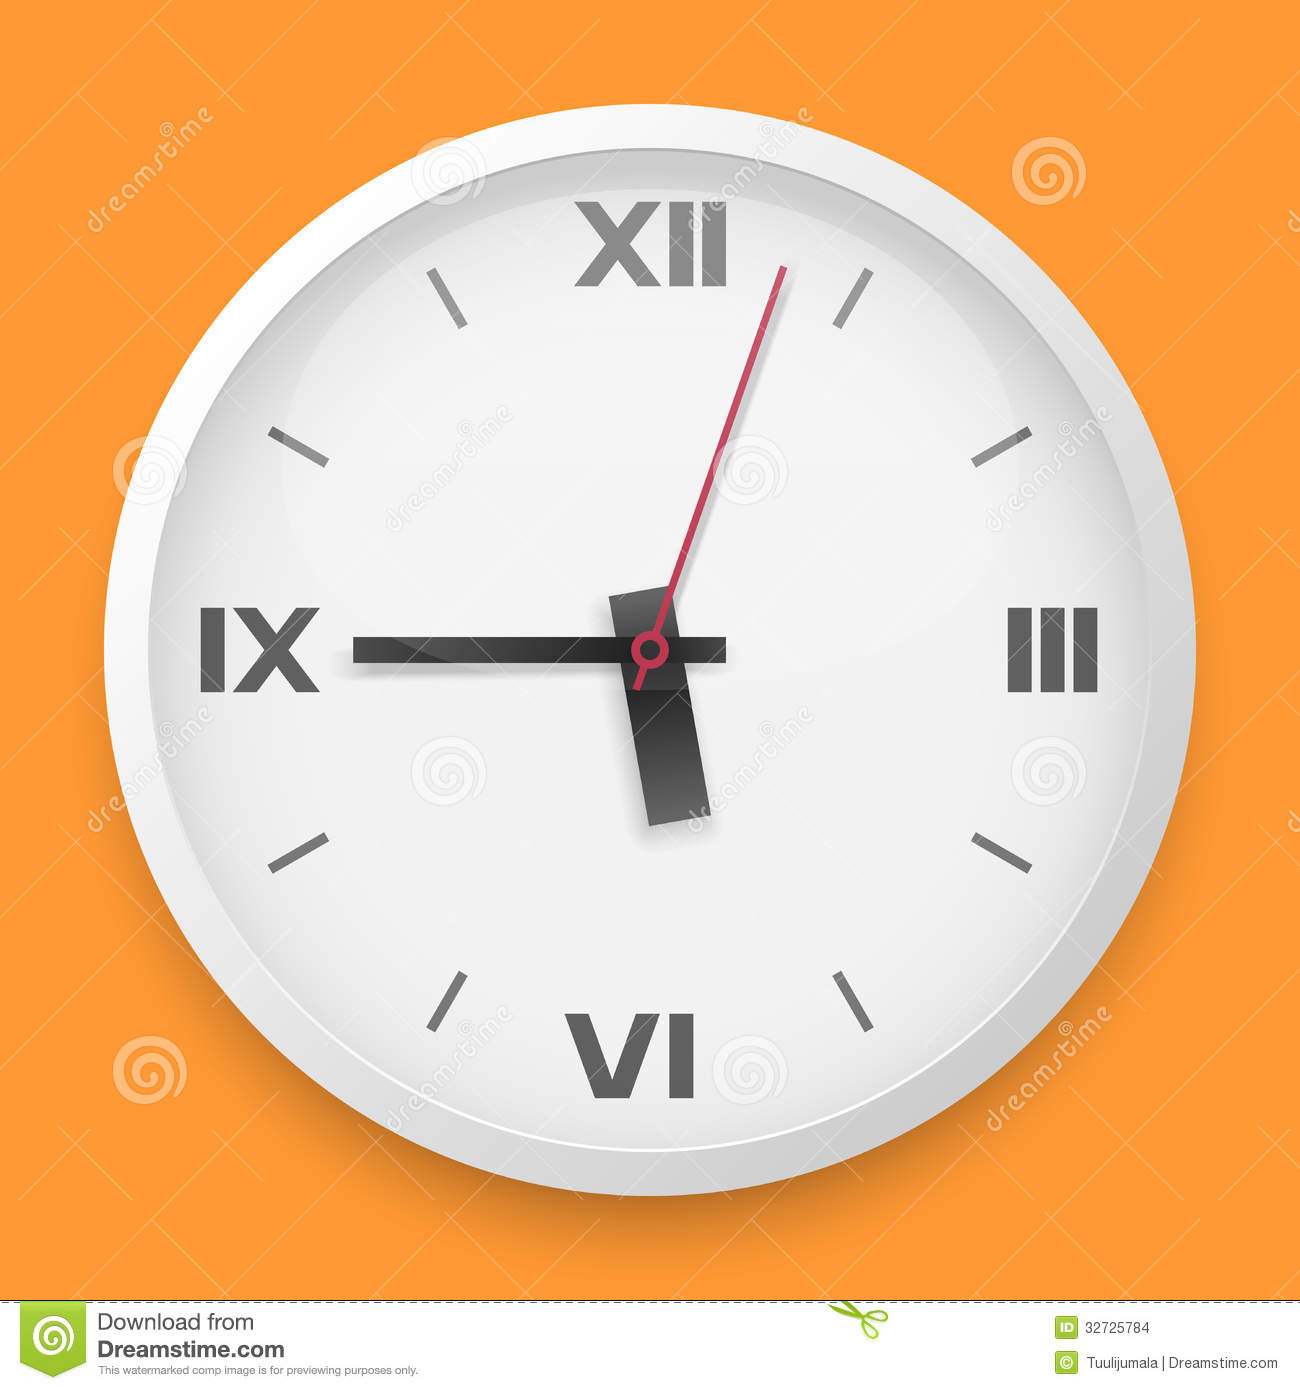 Round wall clock template stock vector. Illustration of pointer ...